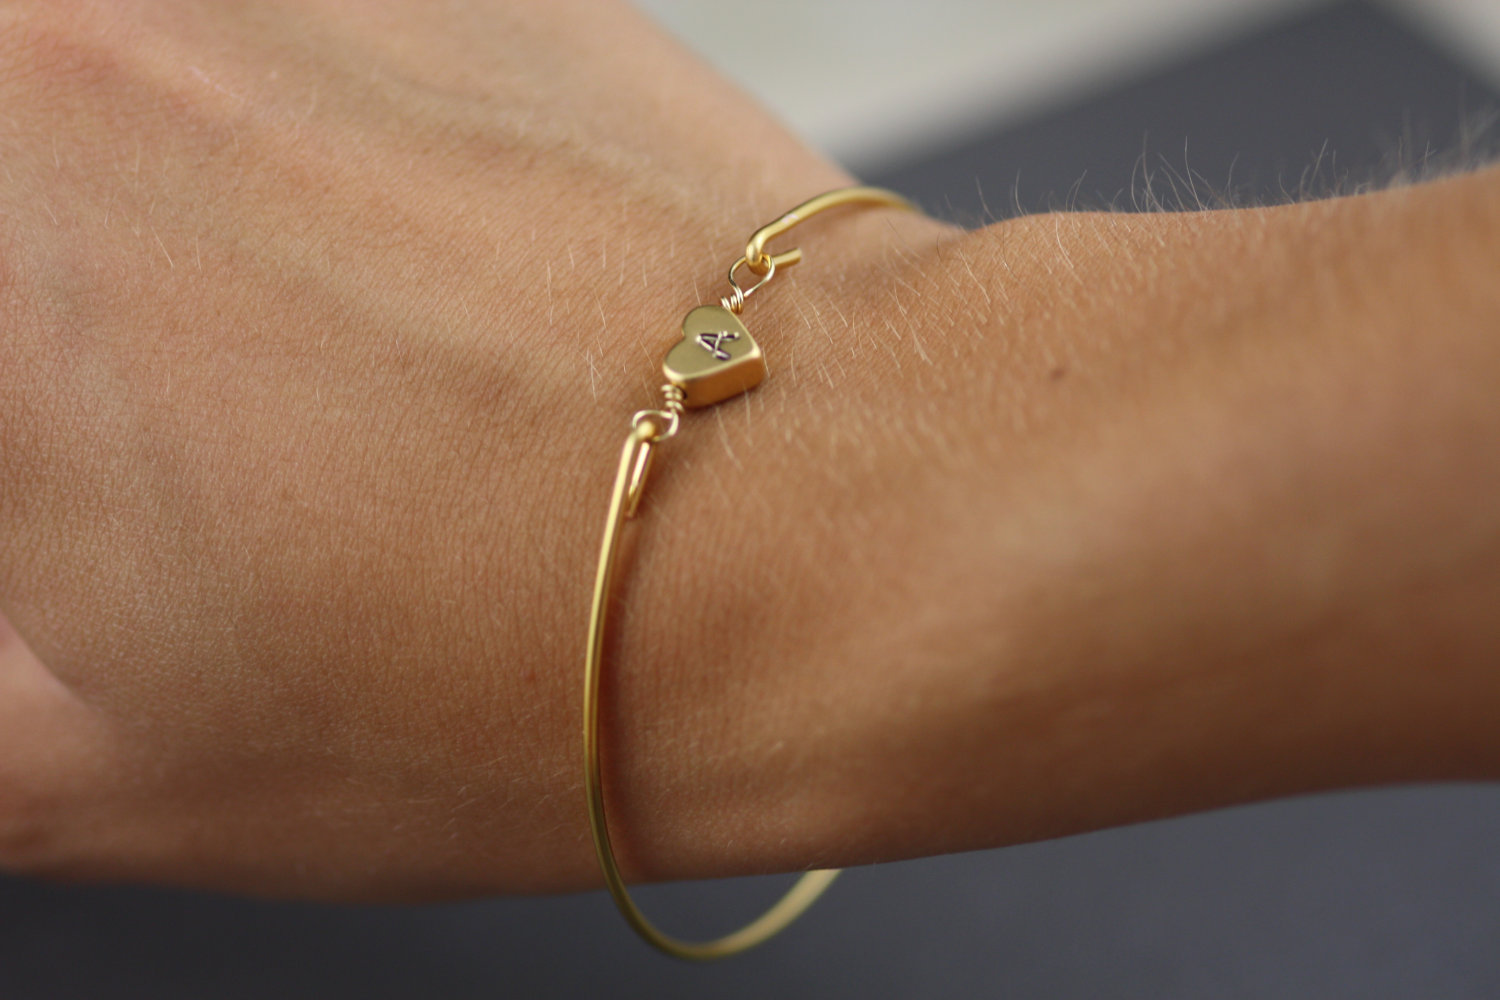 Gold Heart Bangle Bracelet-Simply Gold Personalized Heart Bangle Bracelet-  Initial Jewelry- Minimali on Luulla d0da77be2